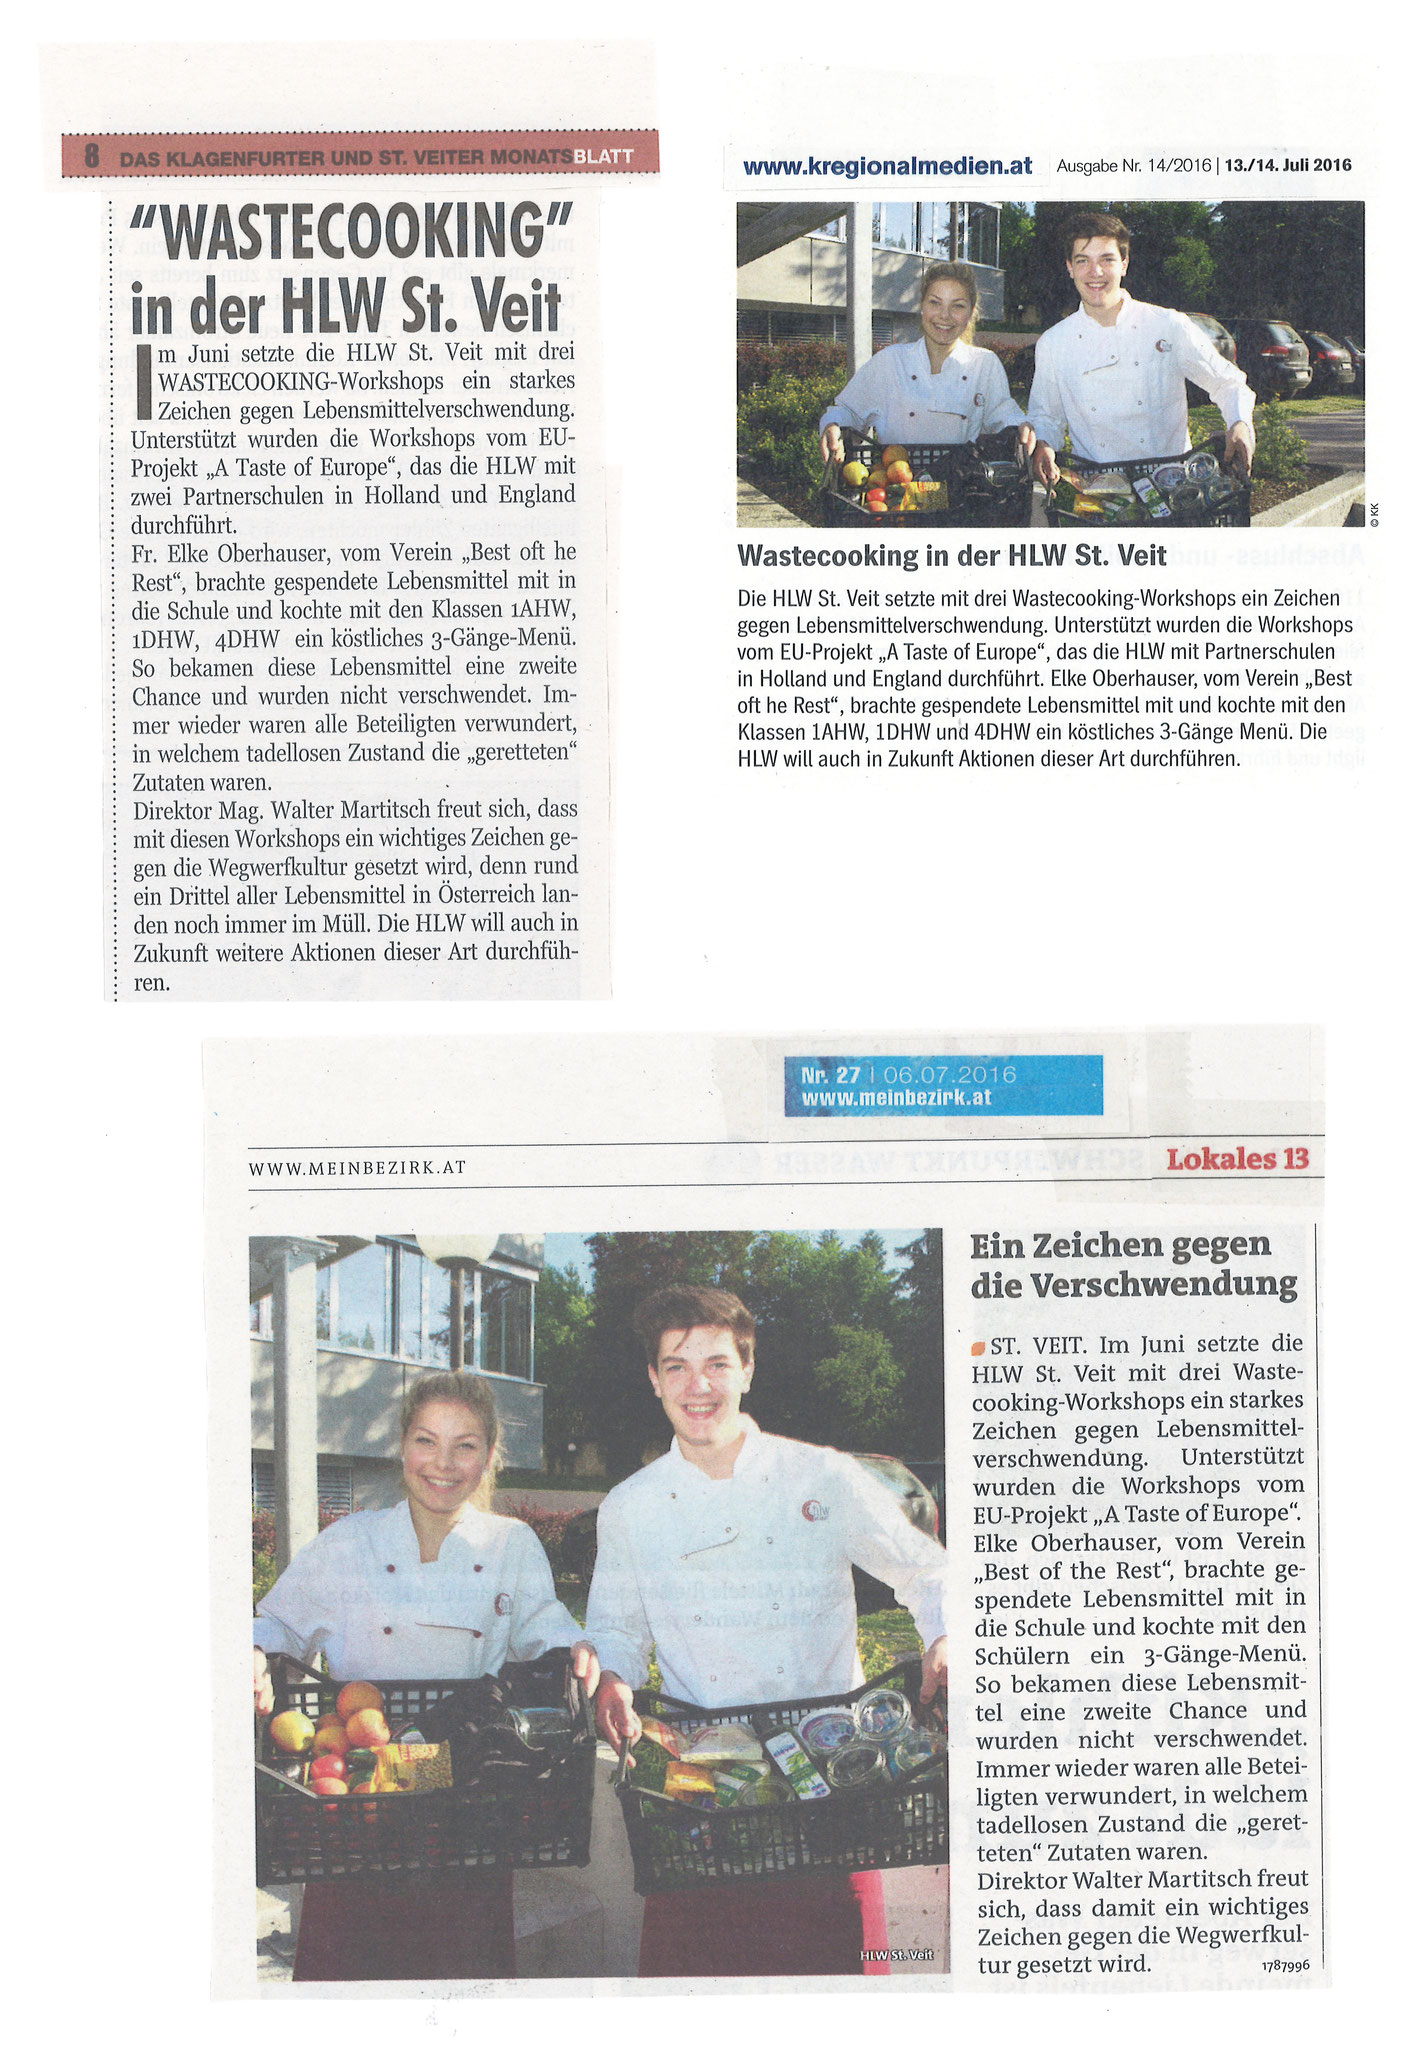 HLW: Newspaper article about Wastecooking St. Veit, July 2016 (DE)